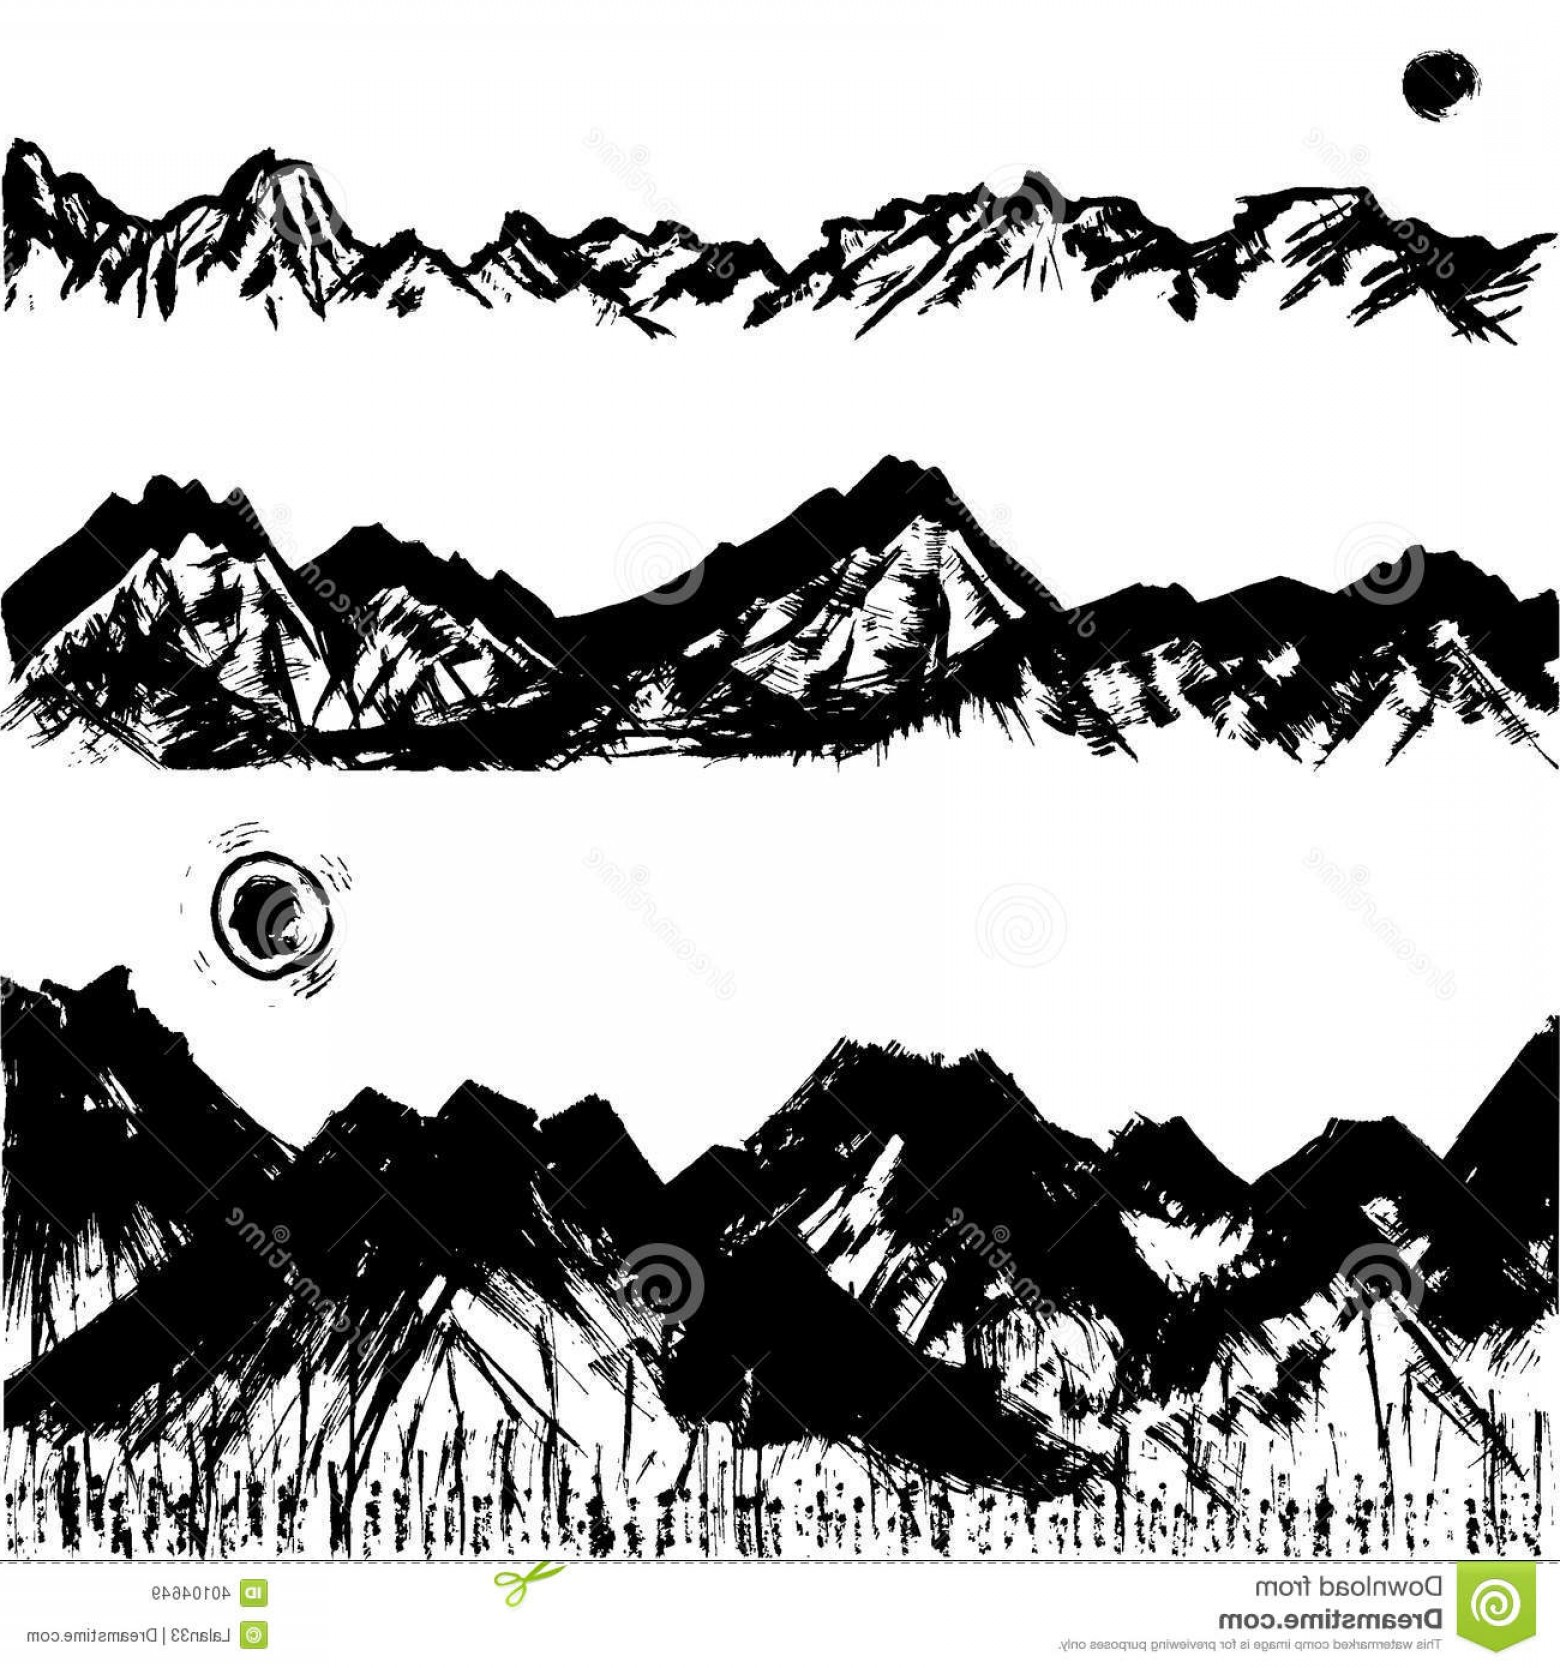 Mountain Range Silhouette Vector Free: Trendy Royalty Free Stock Images Mountain Range Handwritten Brush Stroke Illustrations Image